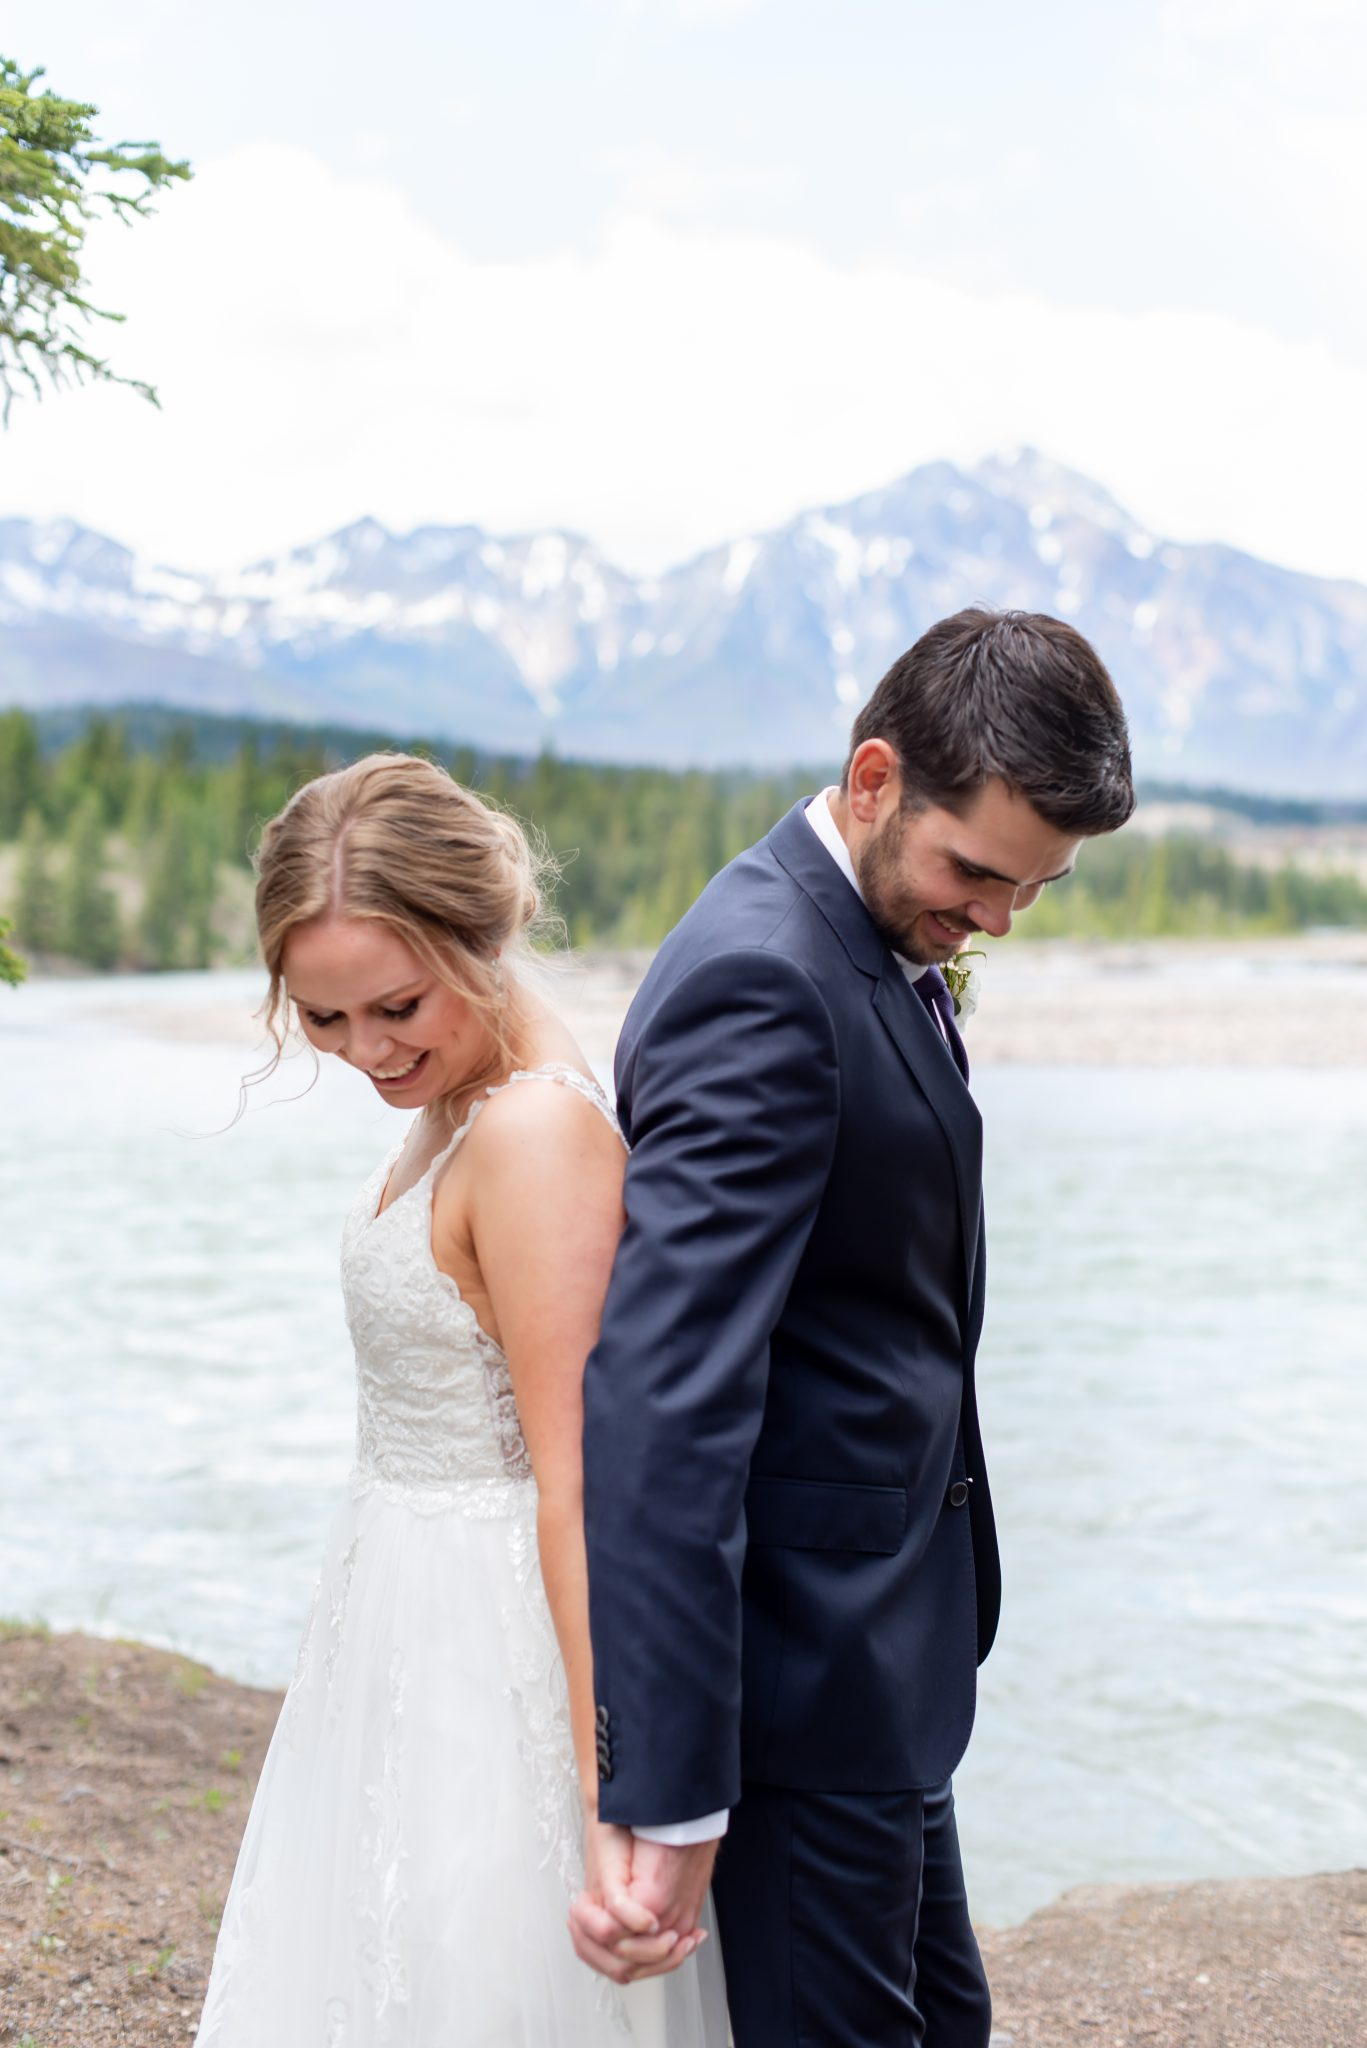 Bride and groom pose hand in hand in Jasper National Park with Pyramid Mountain in the background